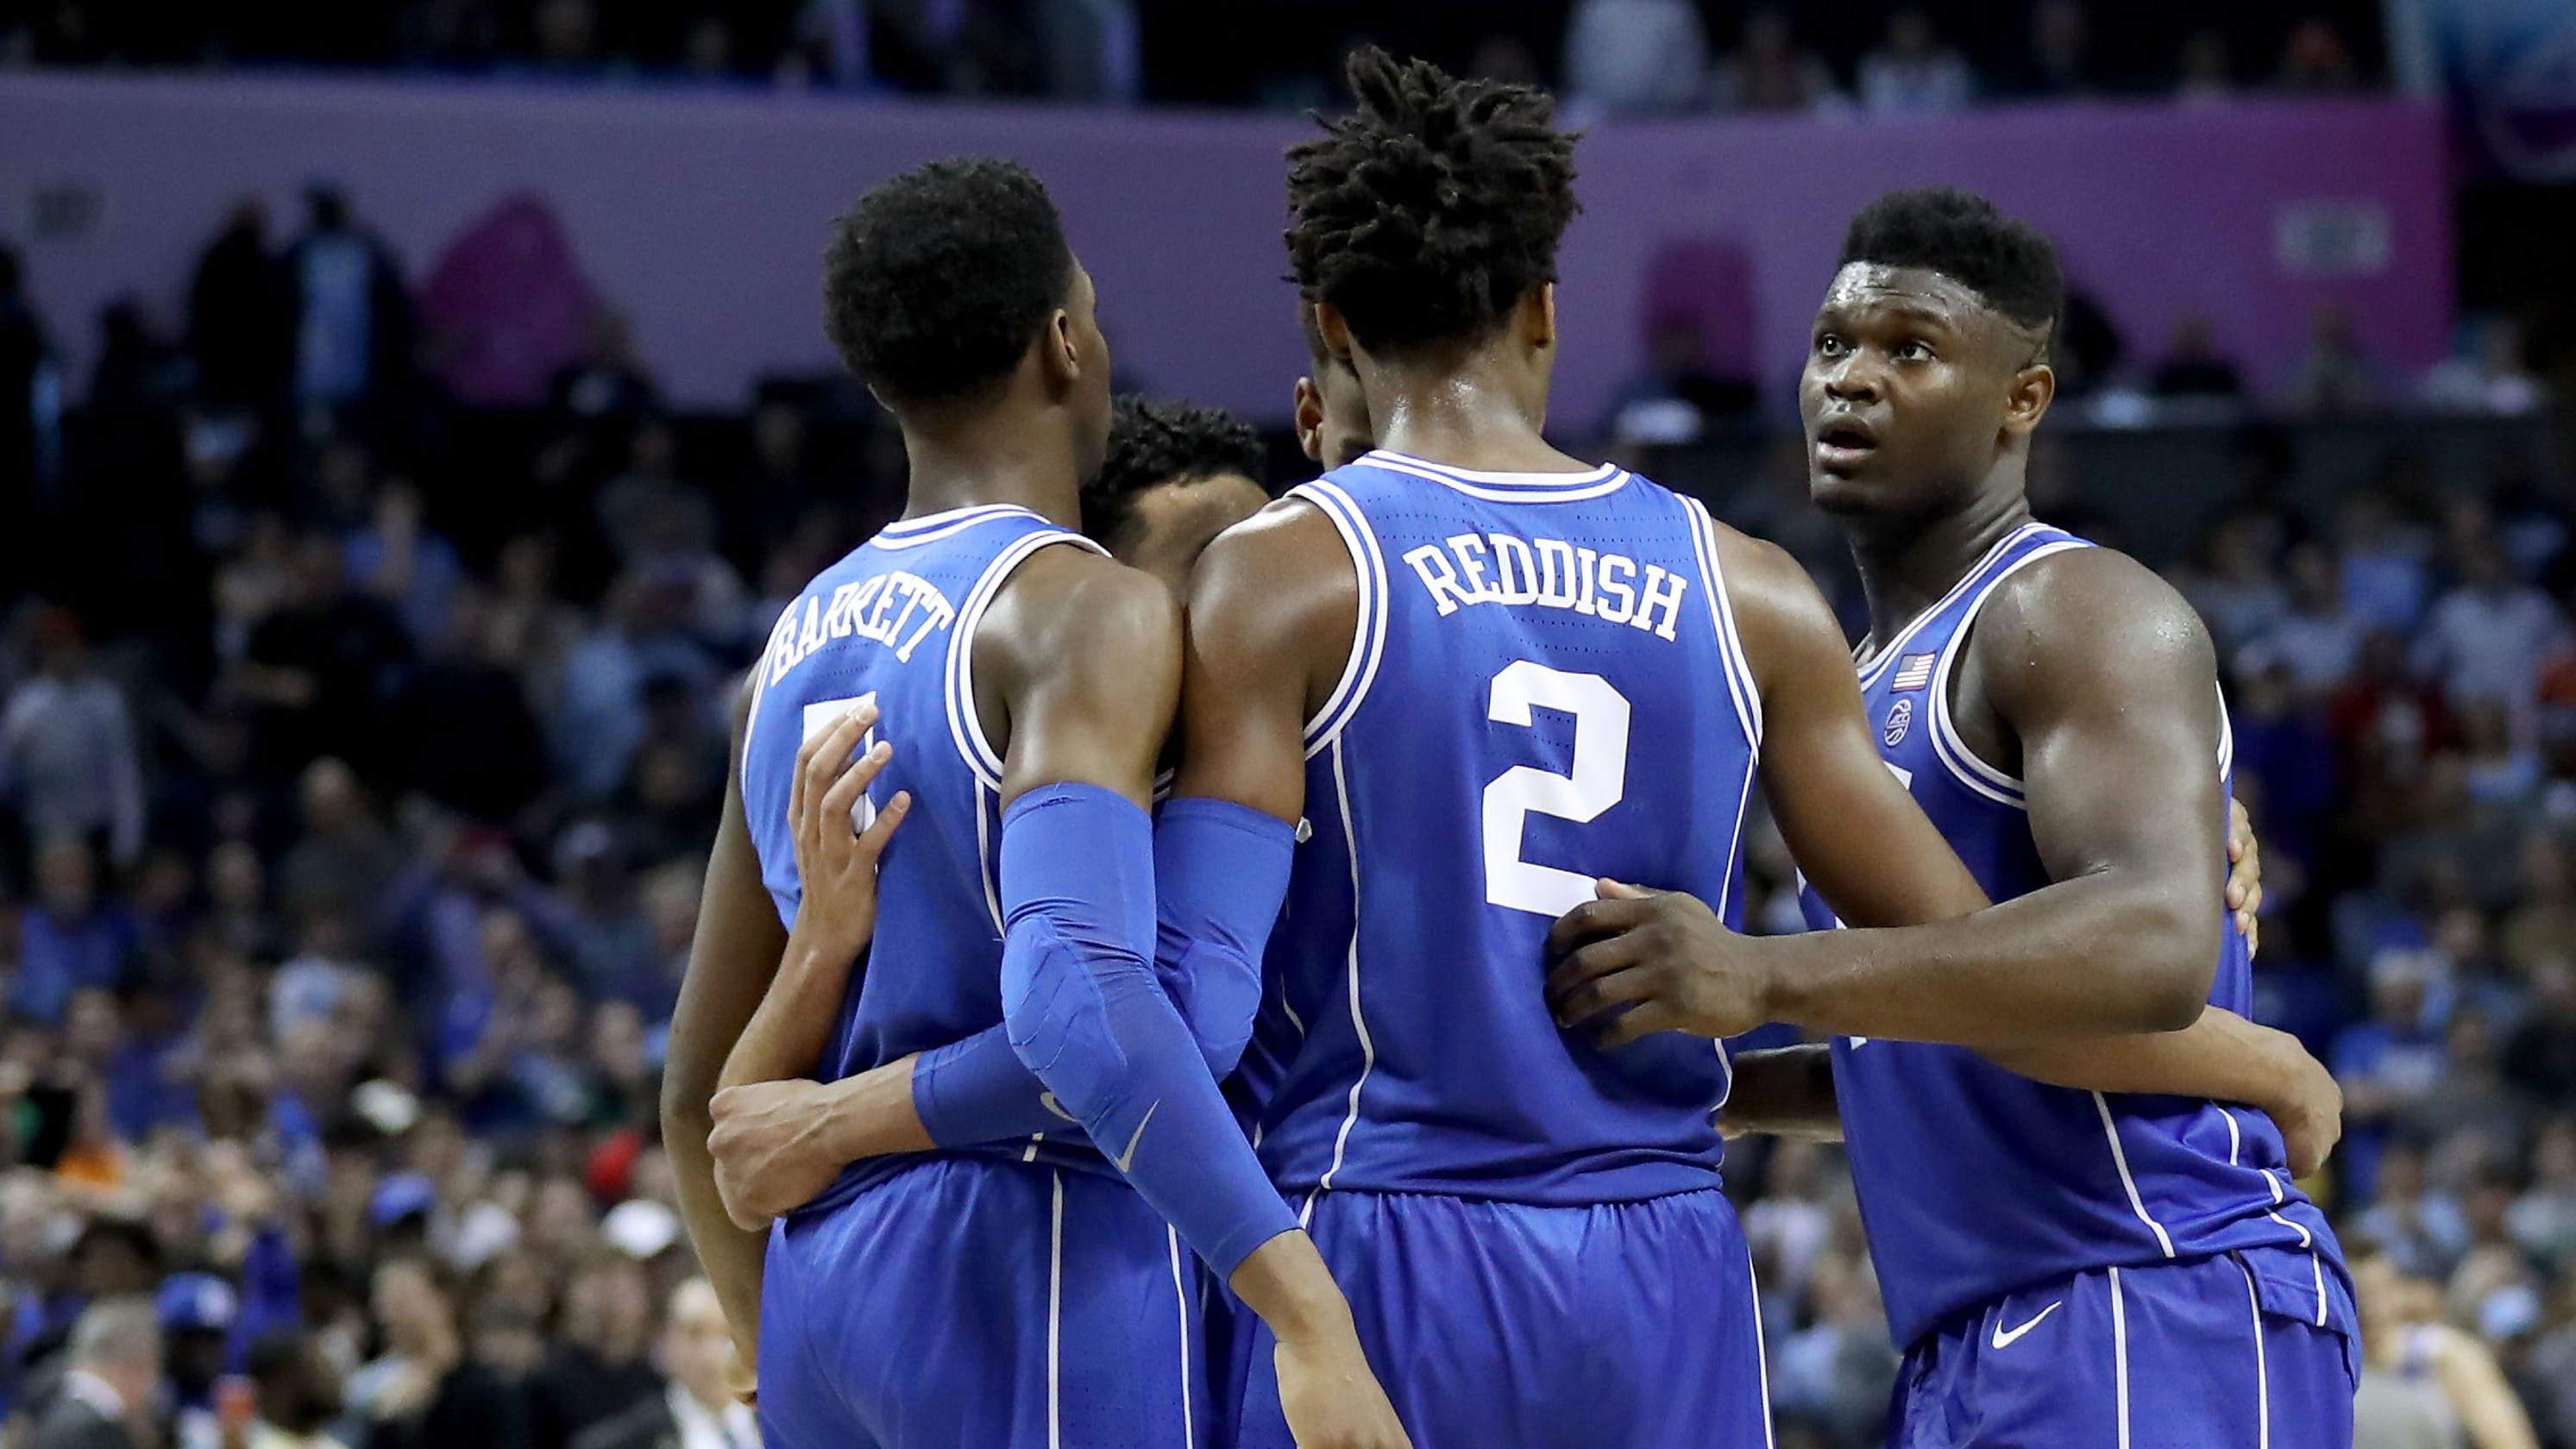 March Madness Bracketology: Predicting The Field For NCAA